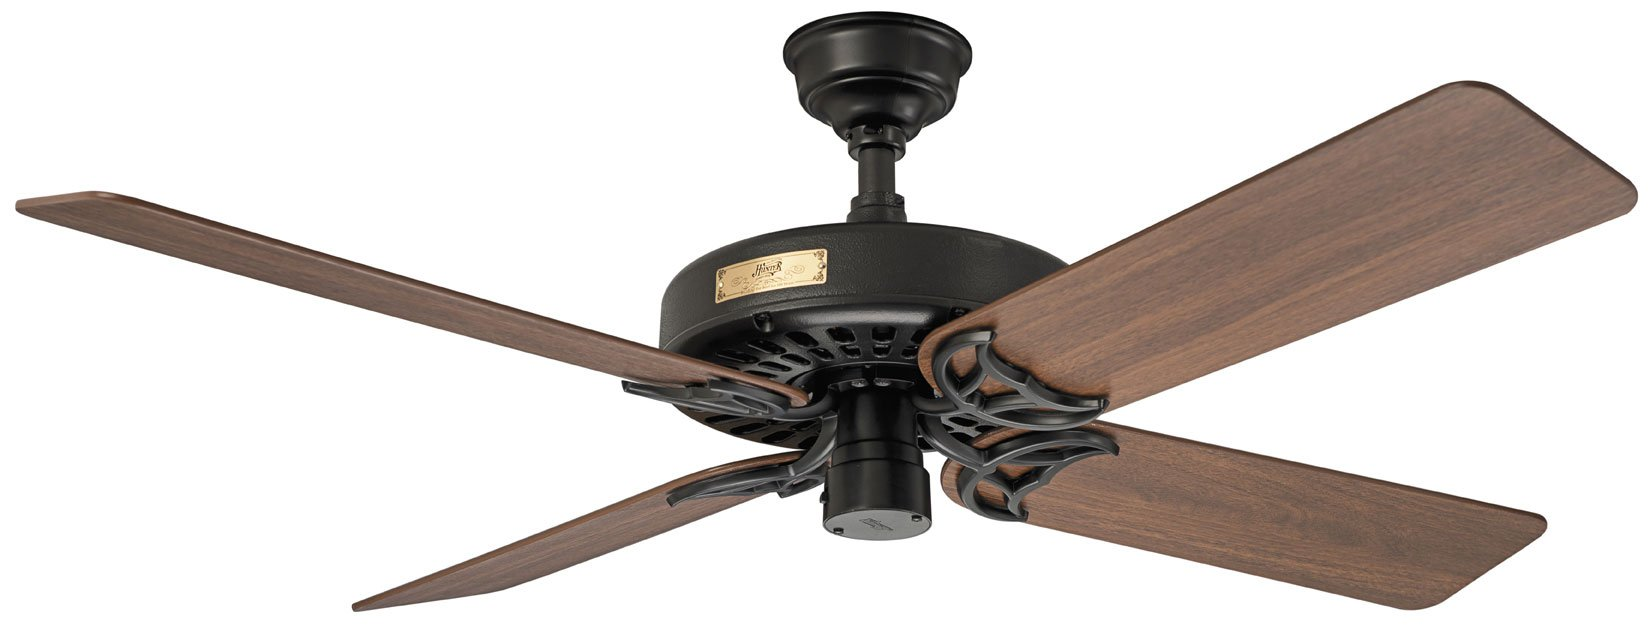 Casablanca 23838 hunter original 52 transitional ceiling fan casa zoom mozeypictures Image collections